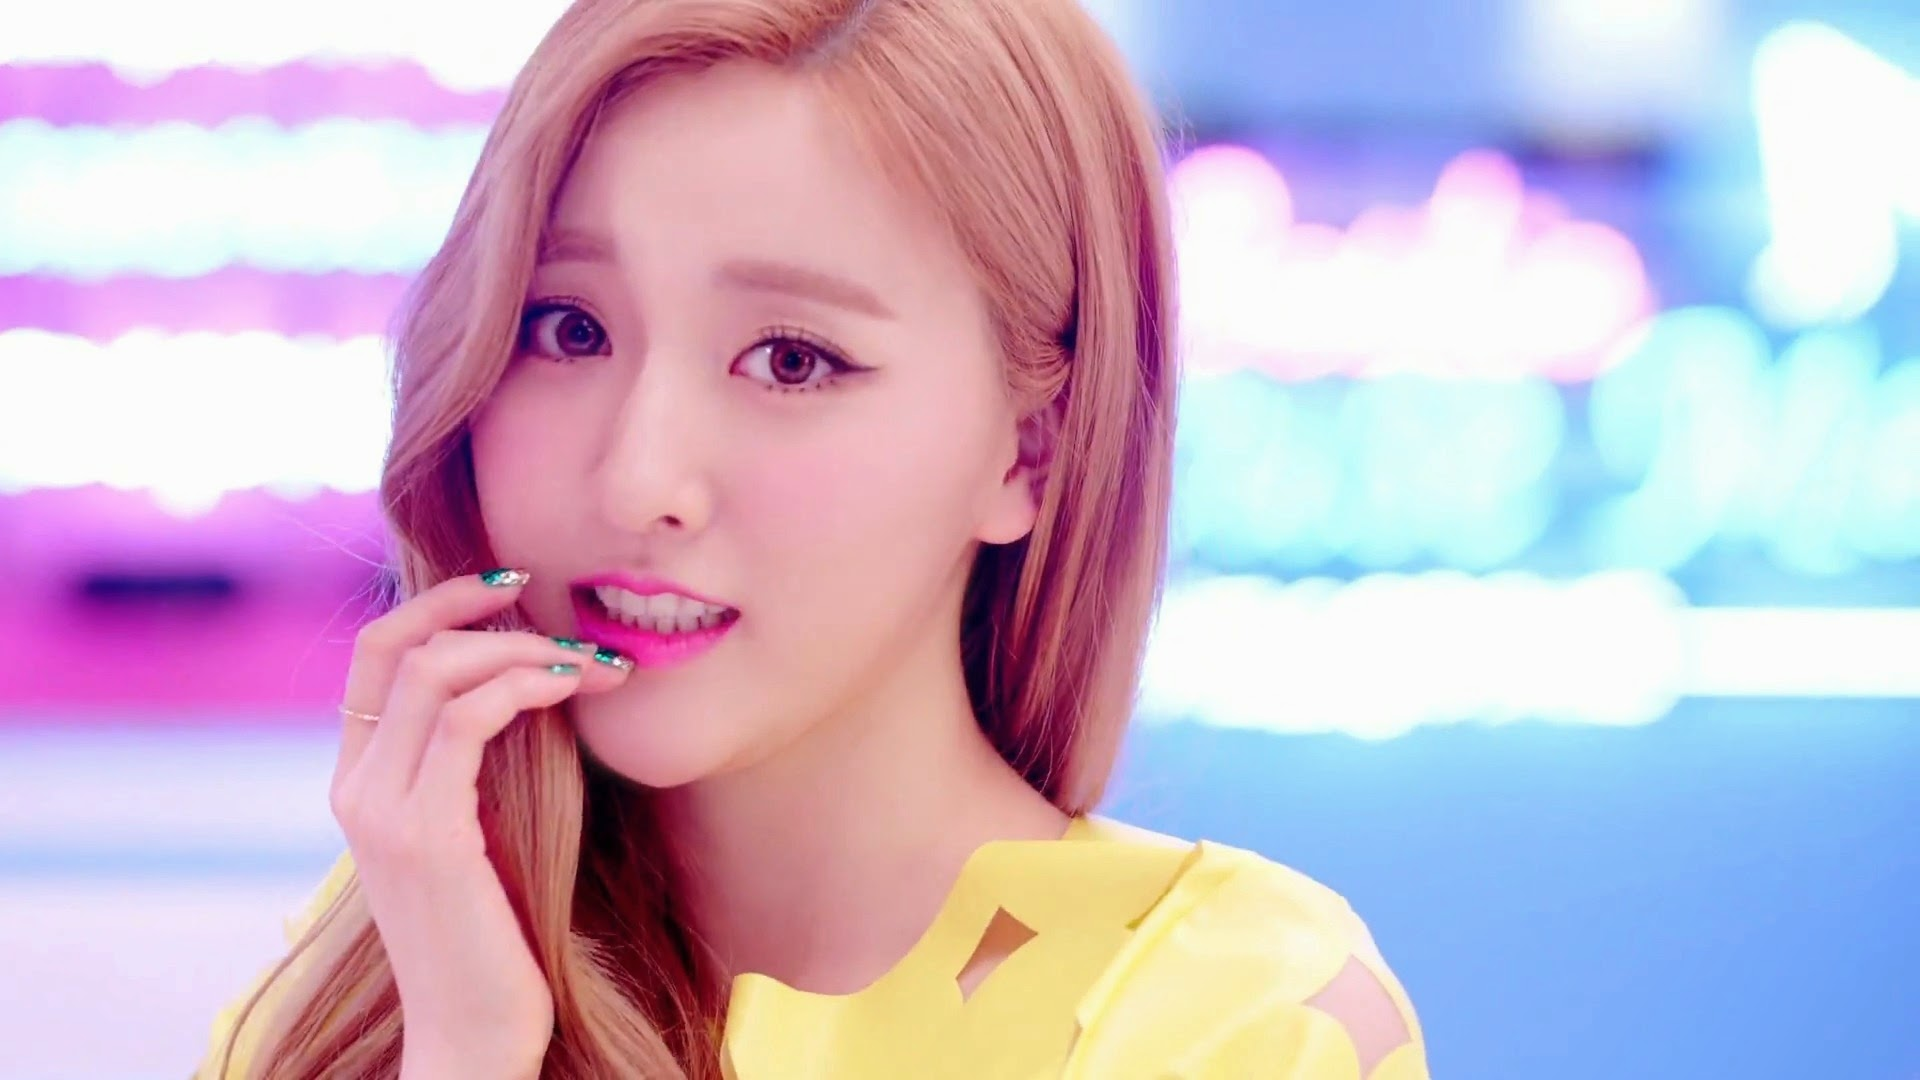 Bestie's Haeryung in Excuse Me MV